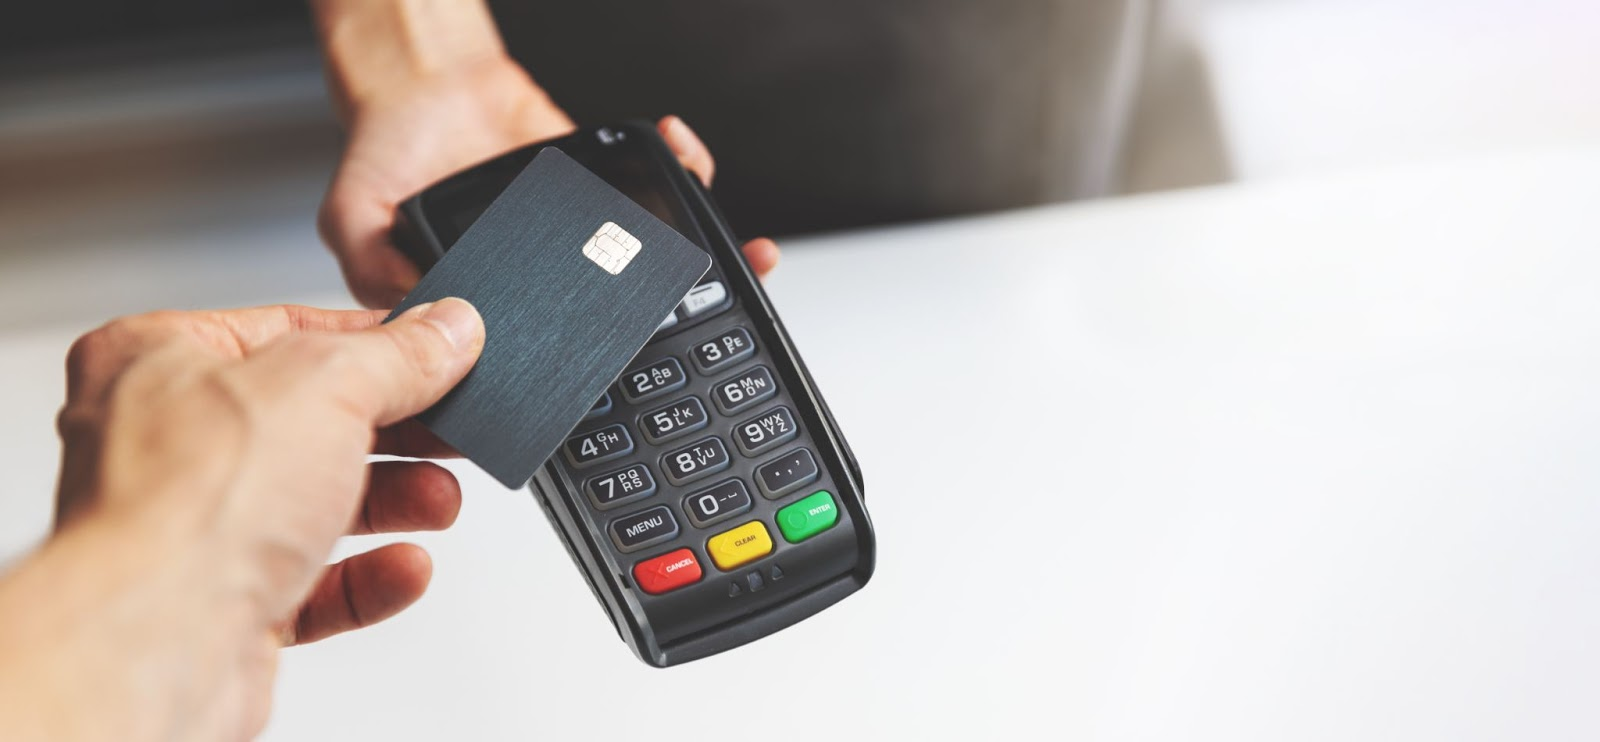 A contactless credit card reader for small businesses, a service offered by Adept Payments.